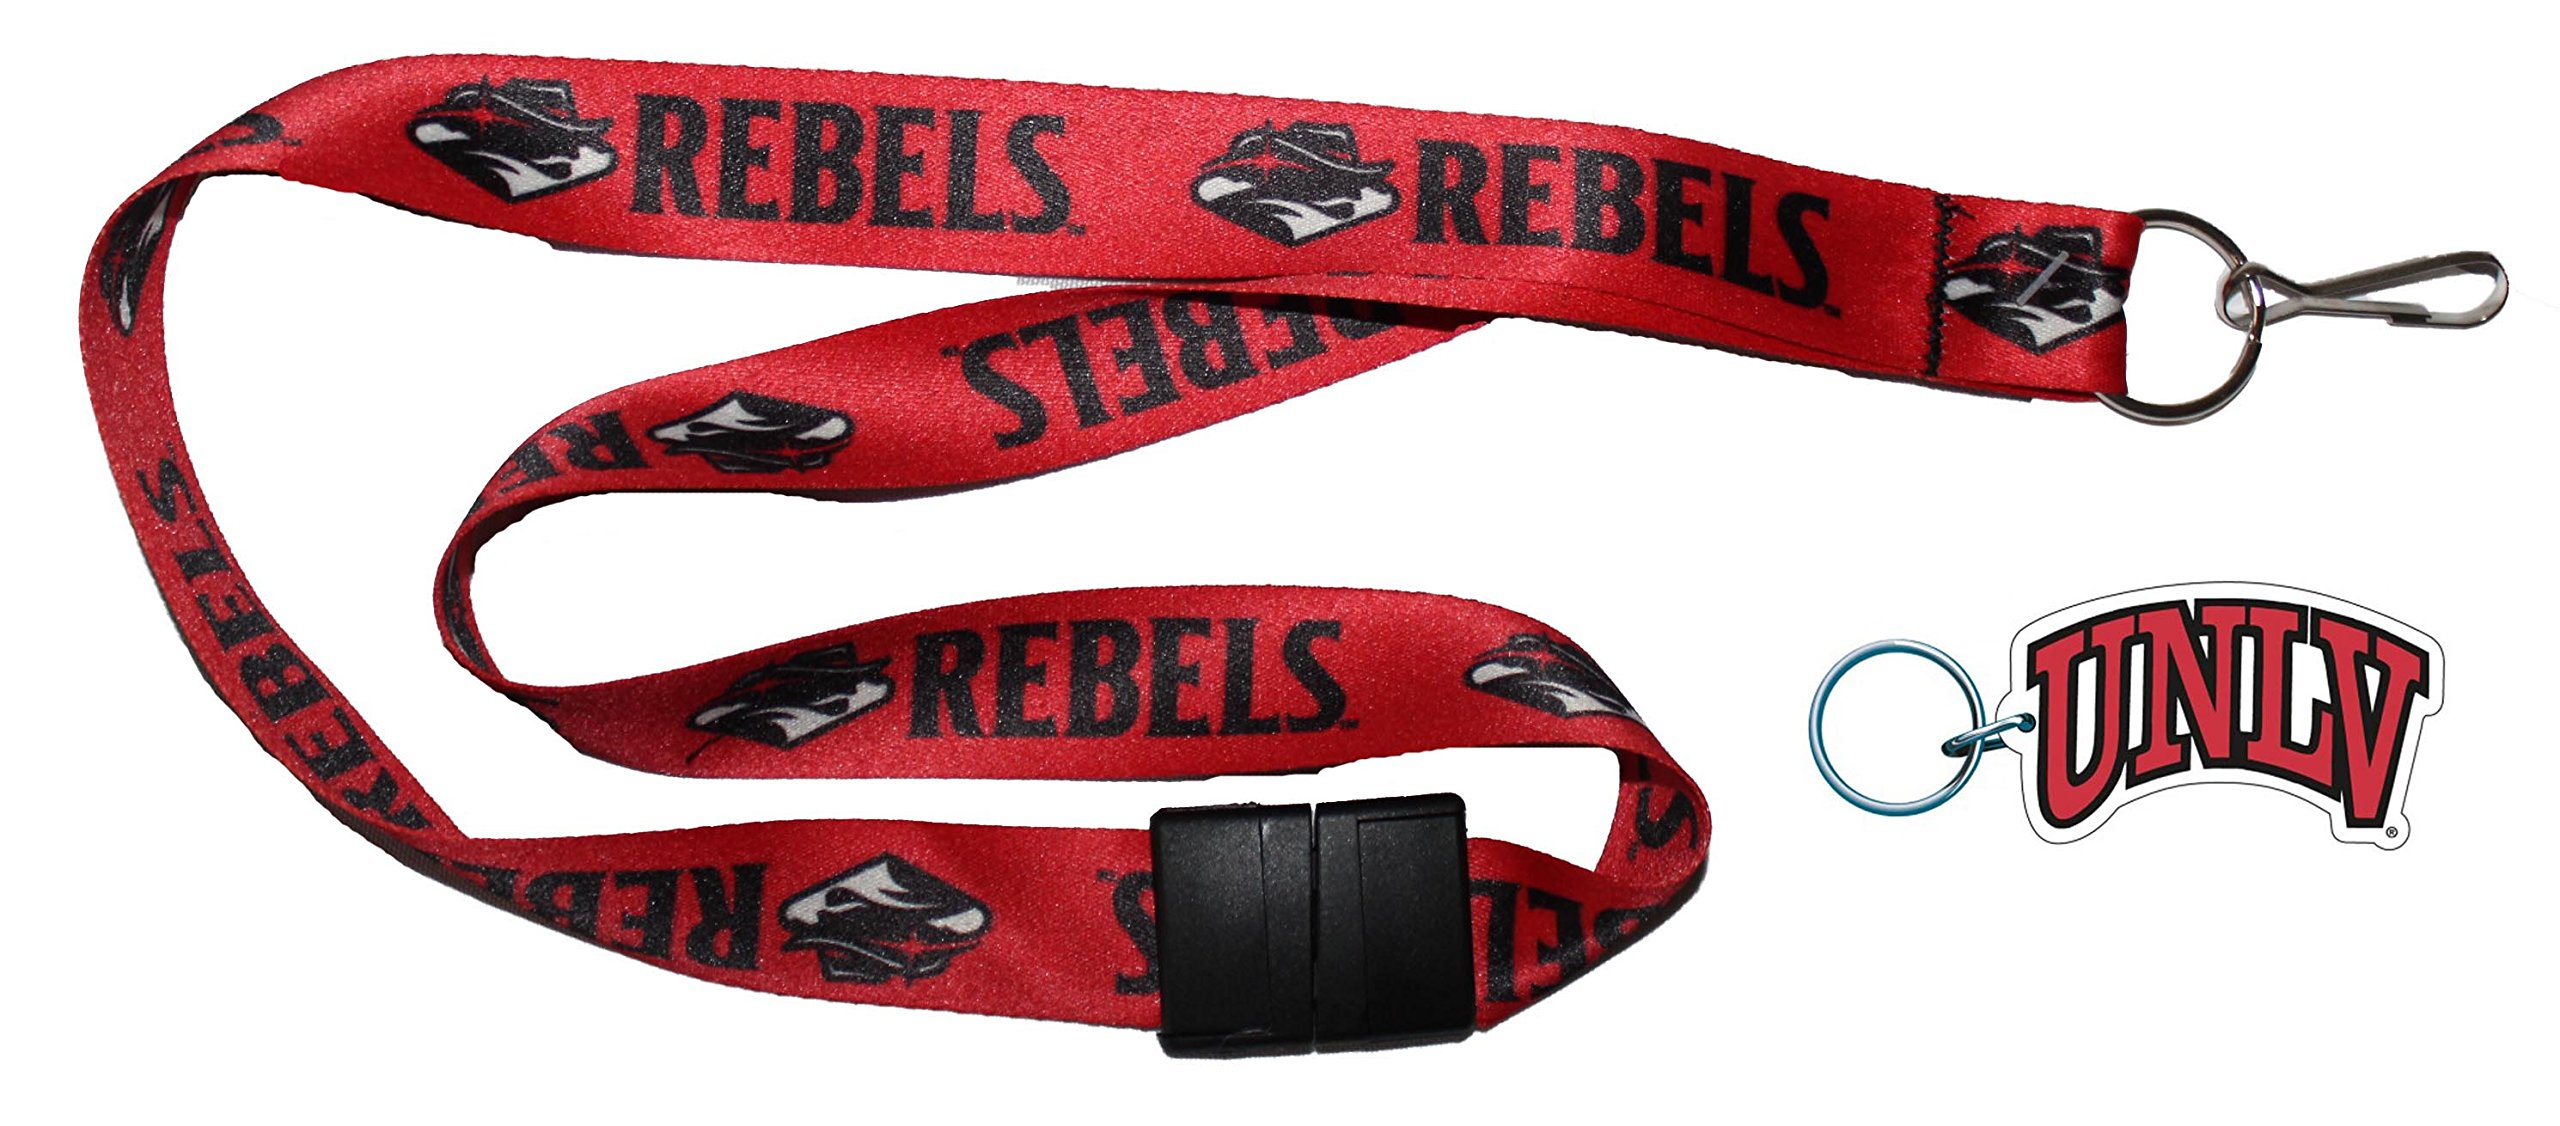 University of Nevada Las Vegas UNLV Rebels Lanyard with Safety Breakaway Clasp and Key Ring Gift Set